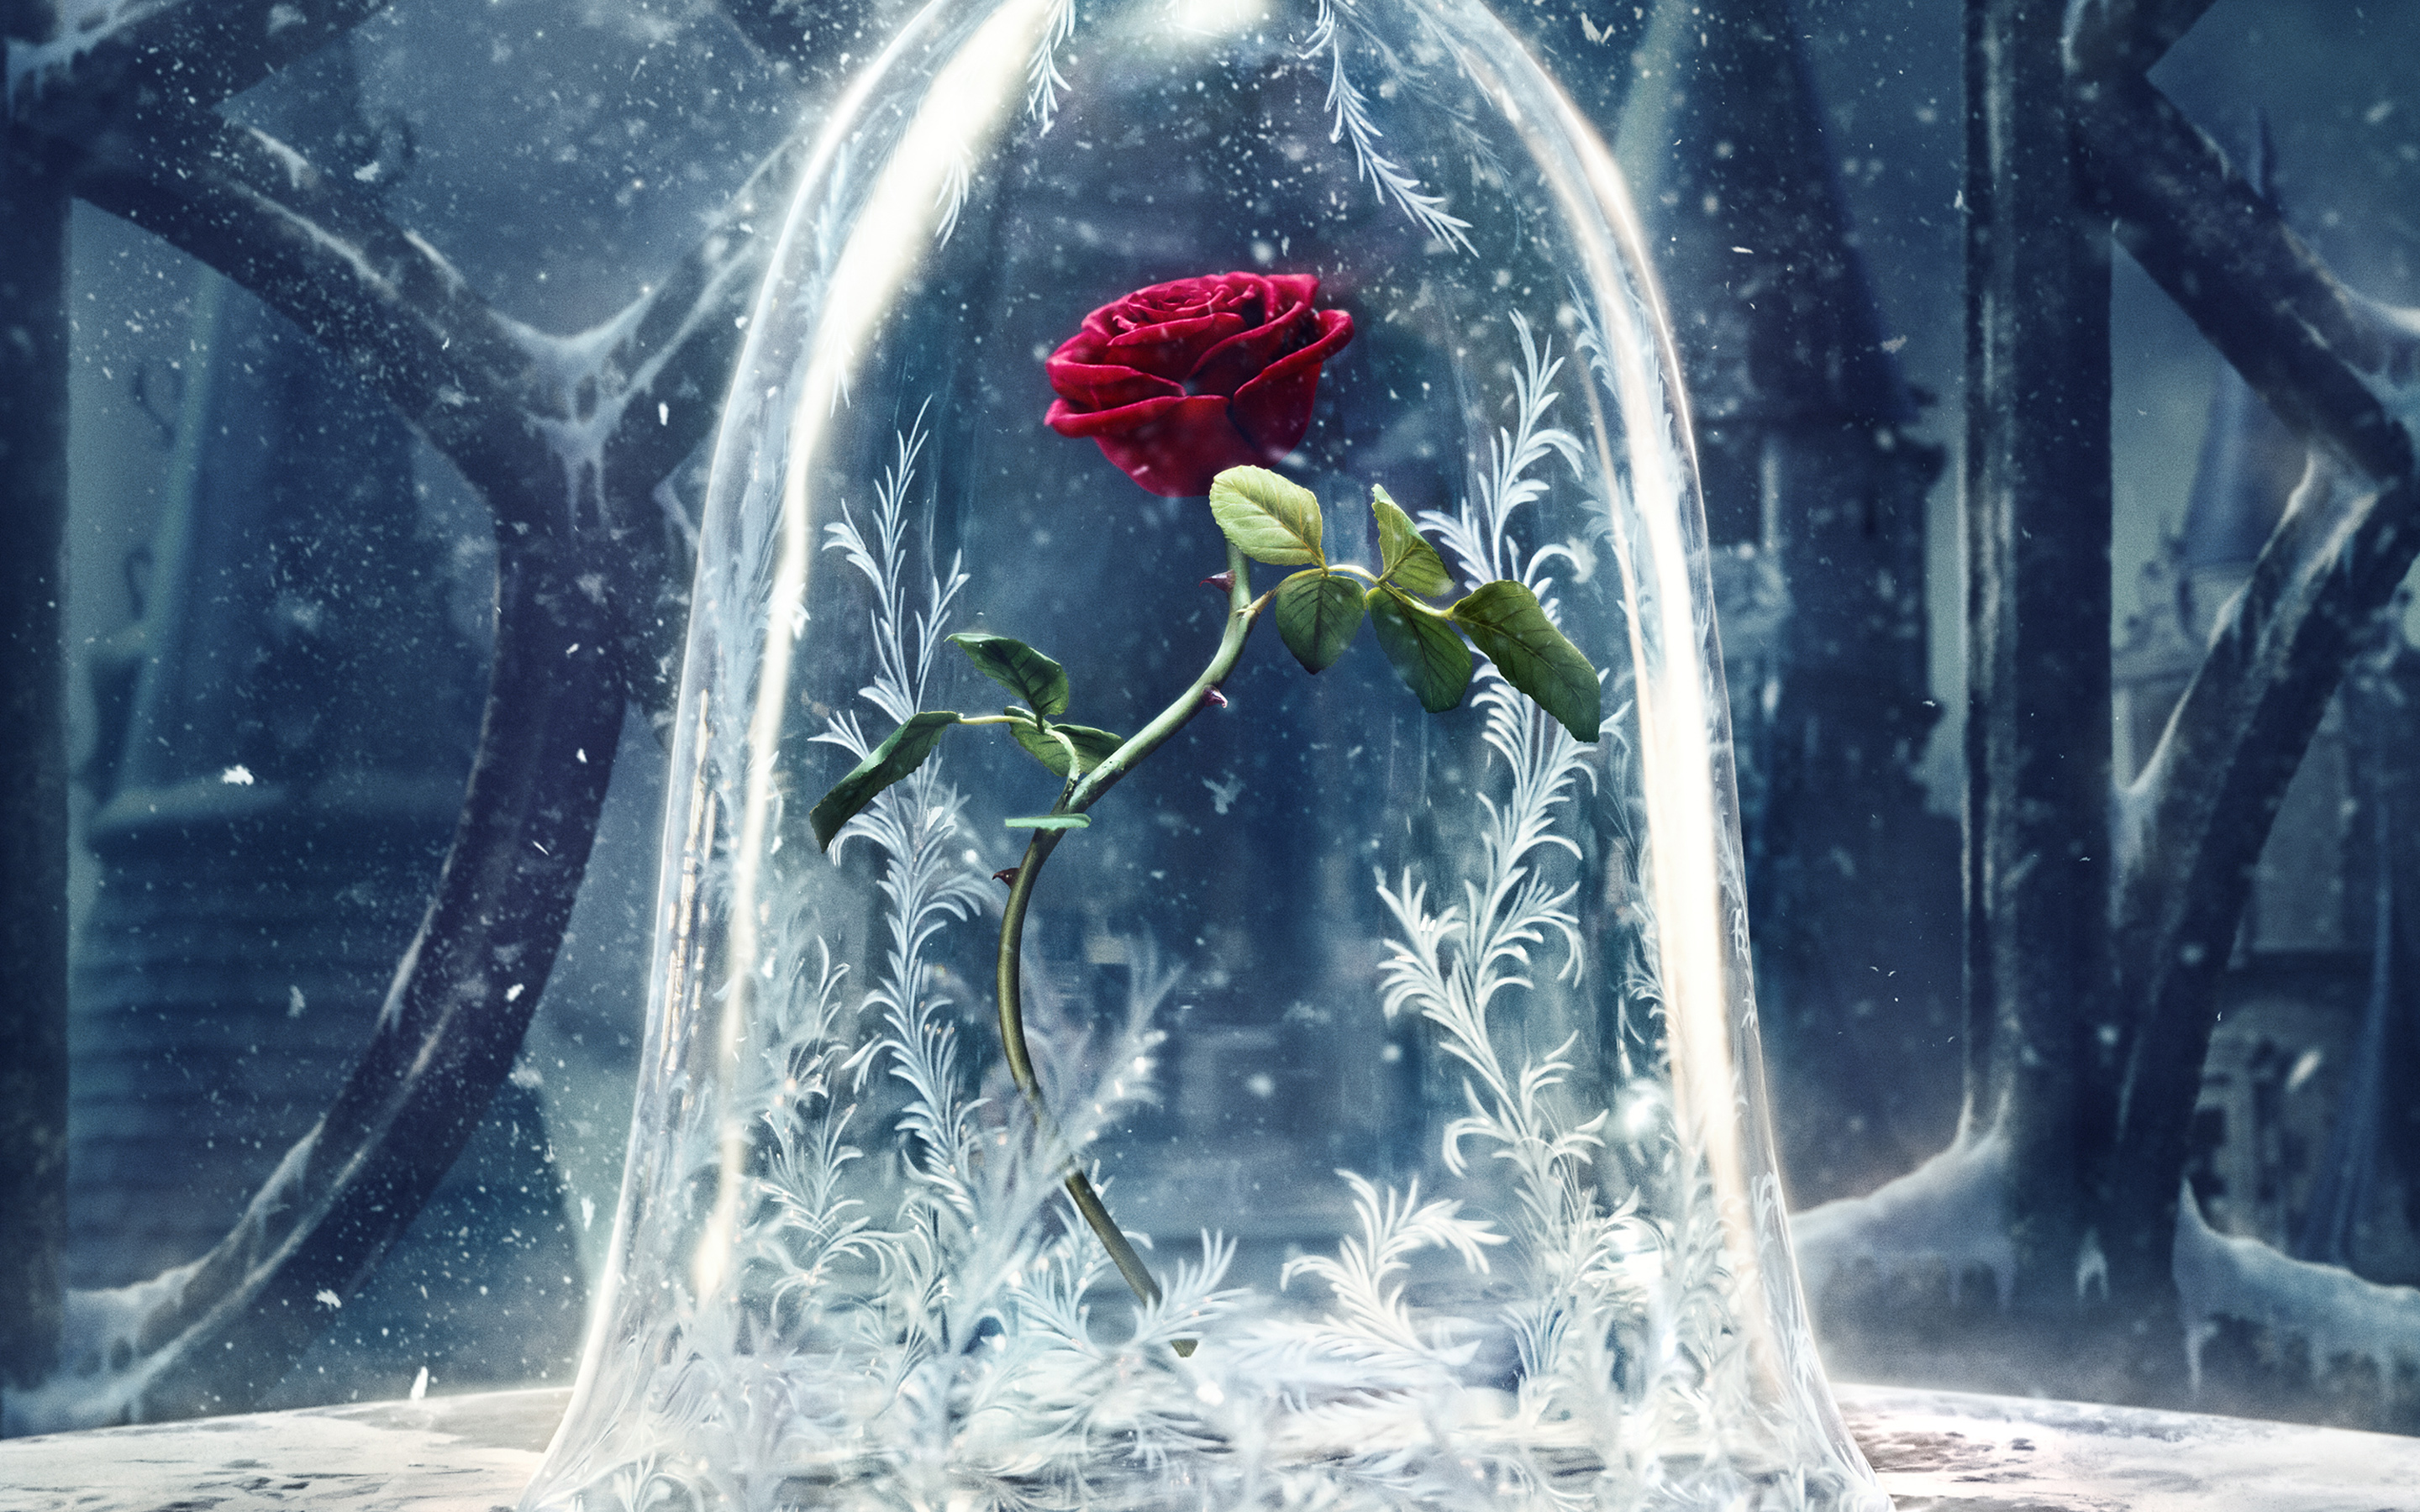 Beauty And The Beast 2017 Wallpapers and Background Images 2880x1800